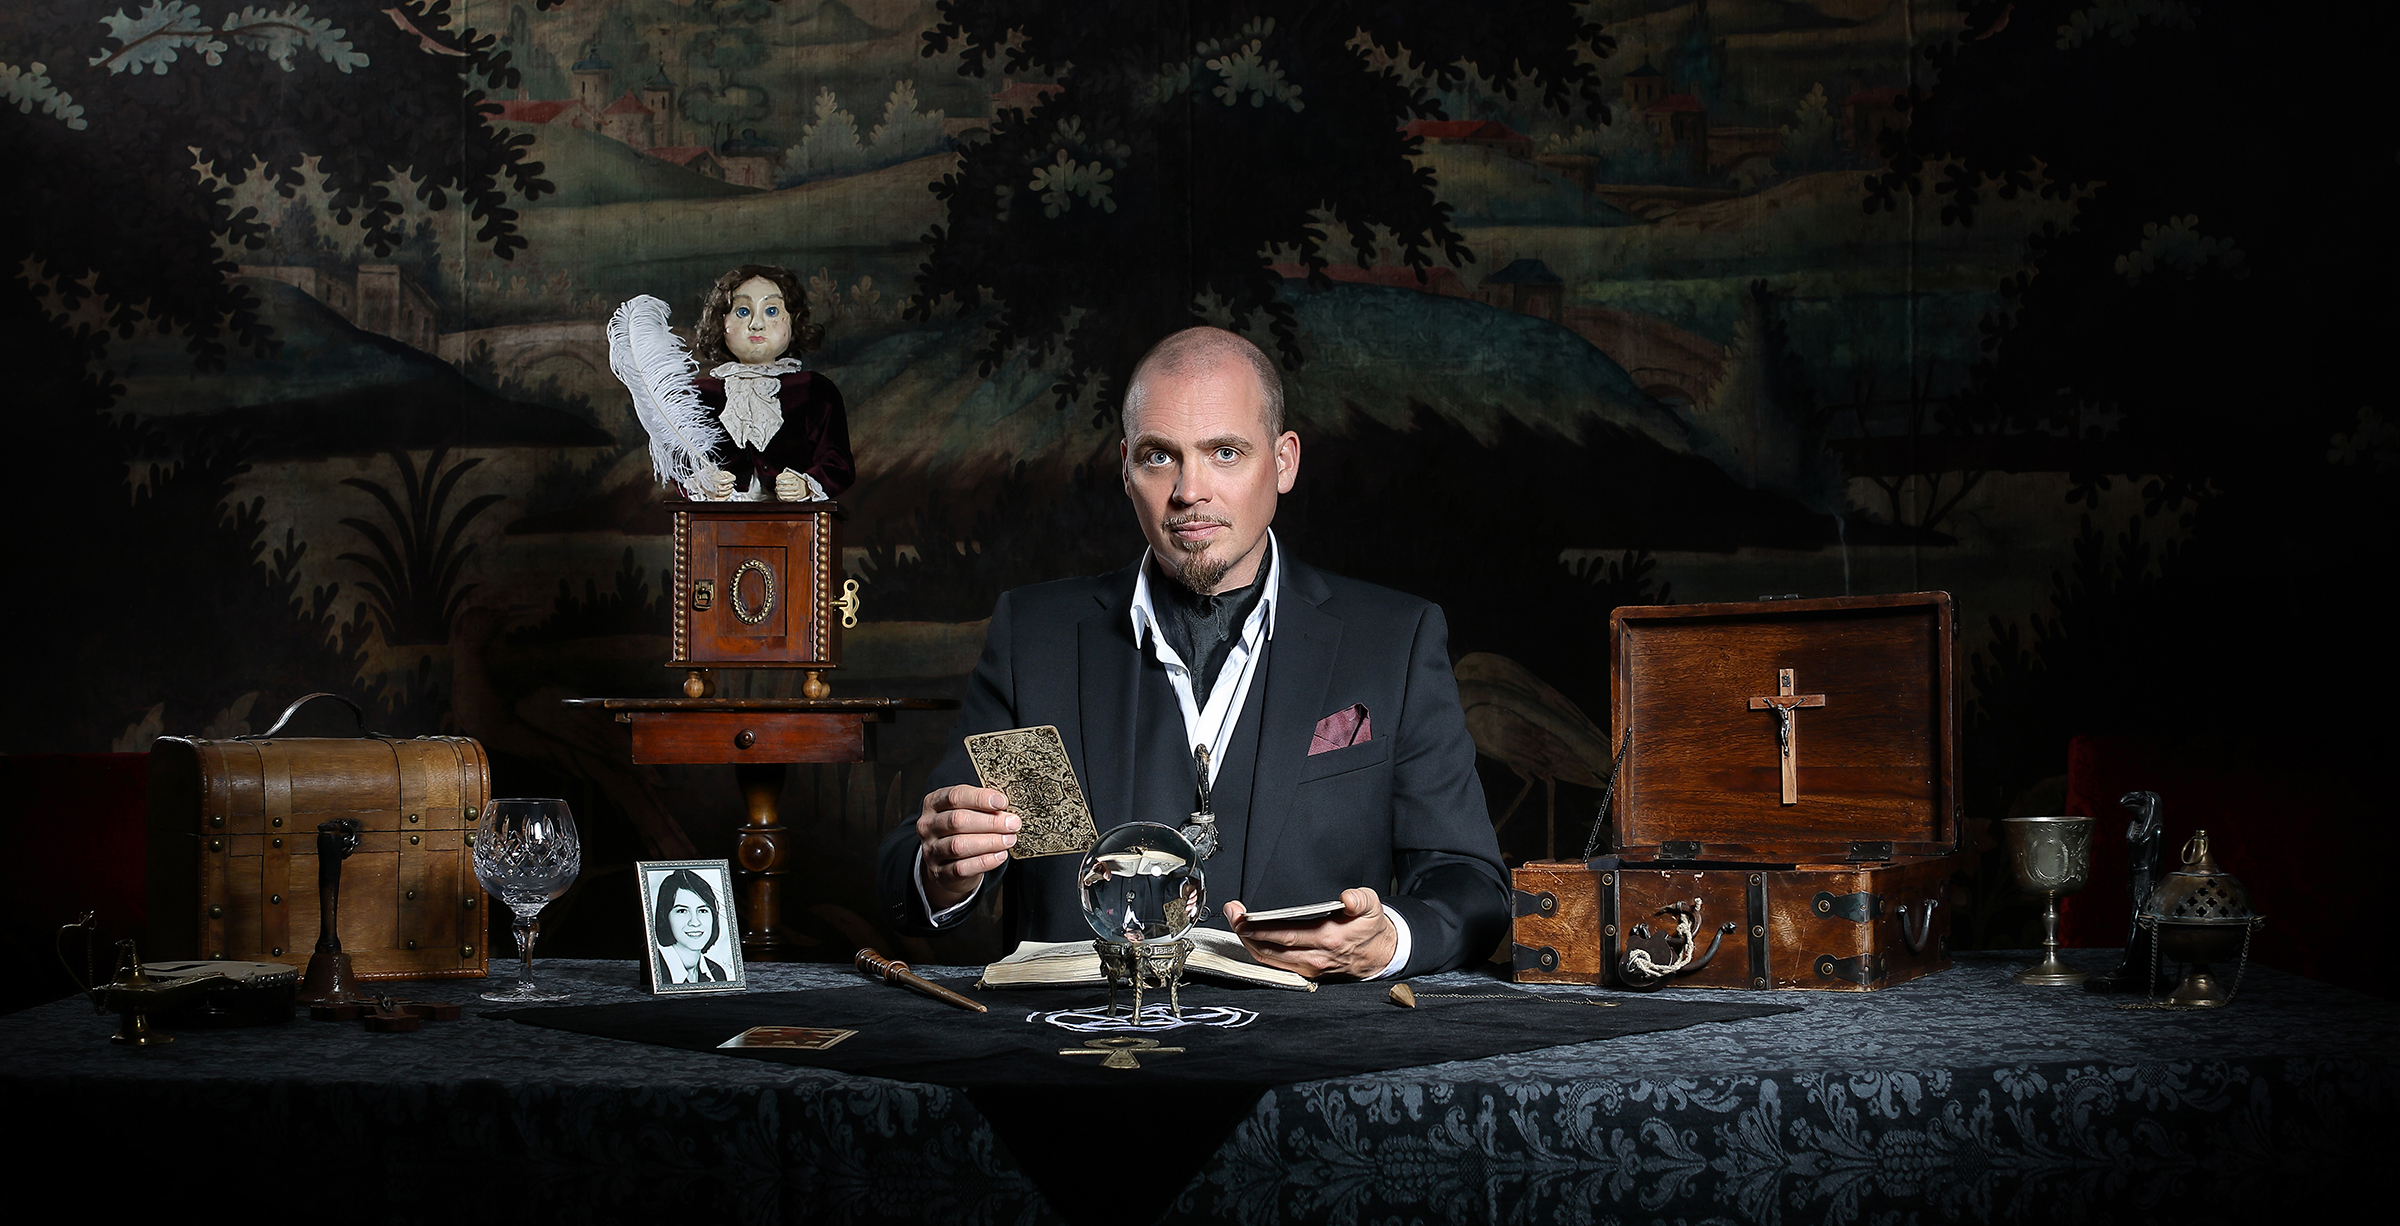 The artist Gaston, sitting a table with a selection of trinkets to either side. He is wearing a black suit and holding a tarot card.